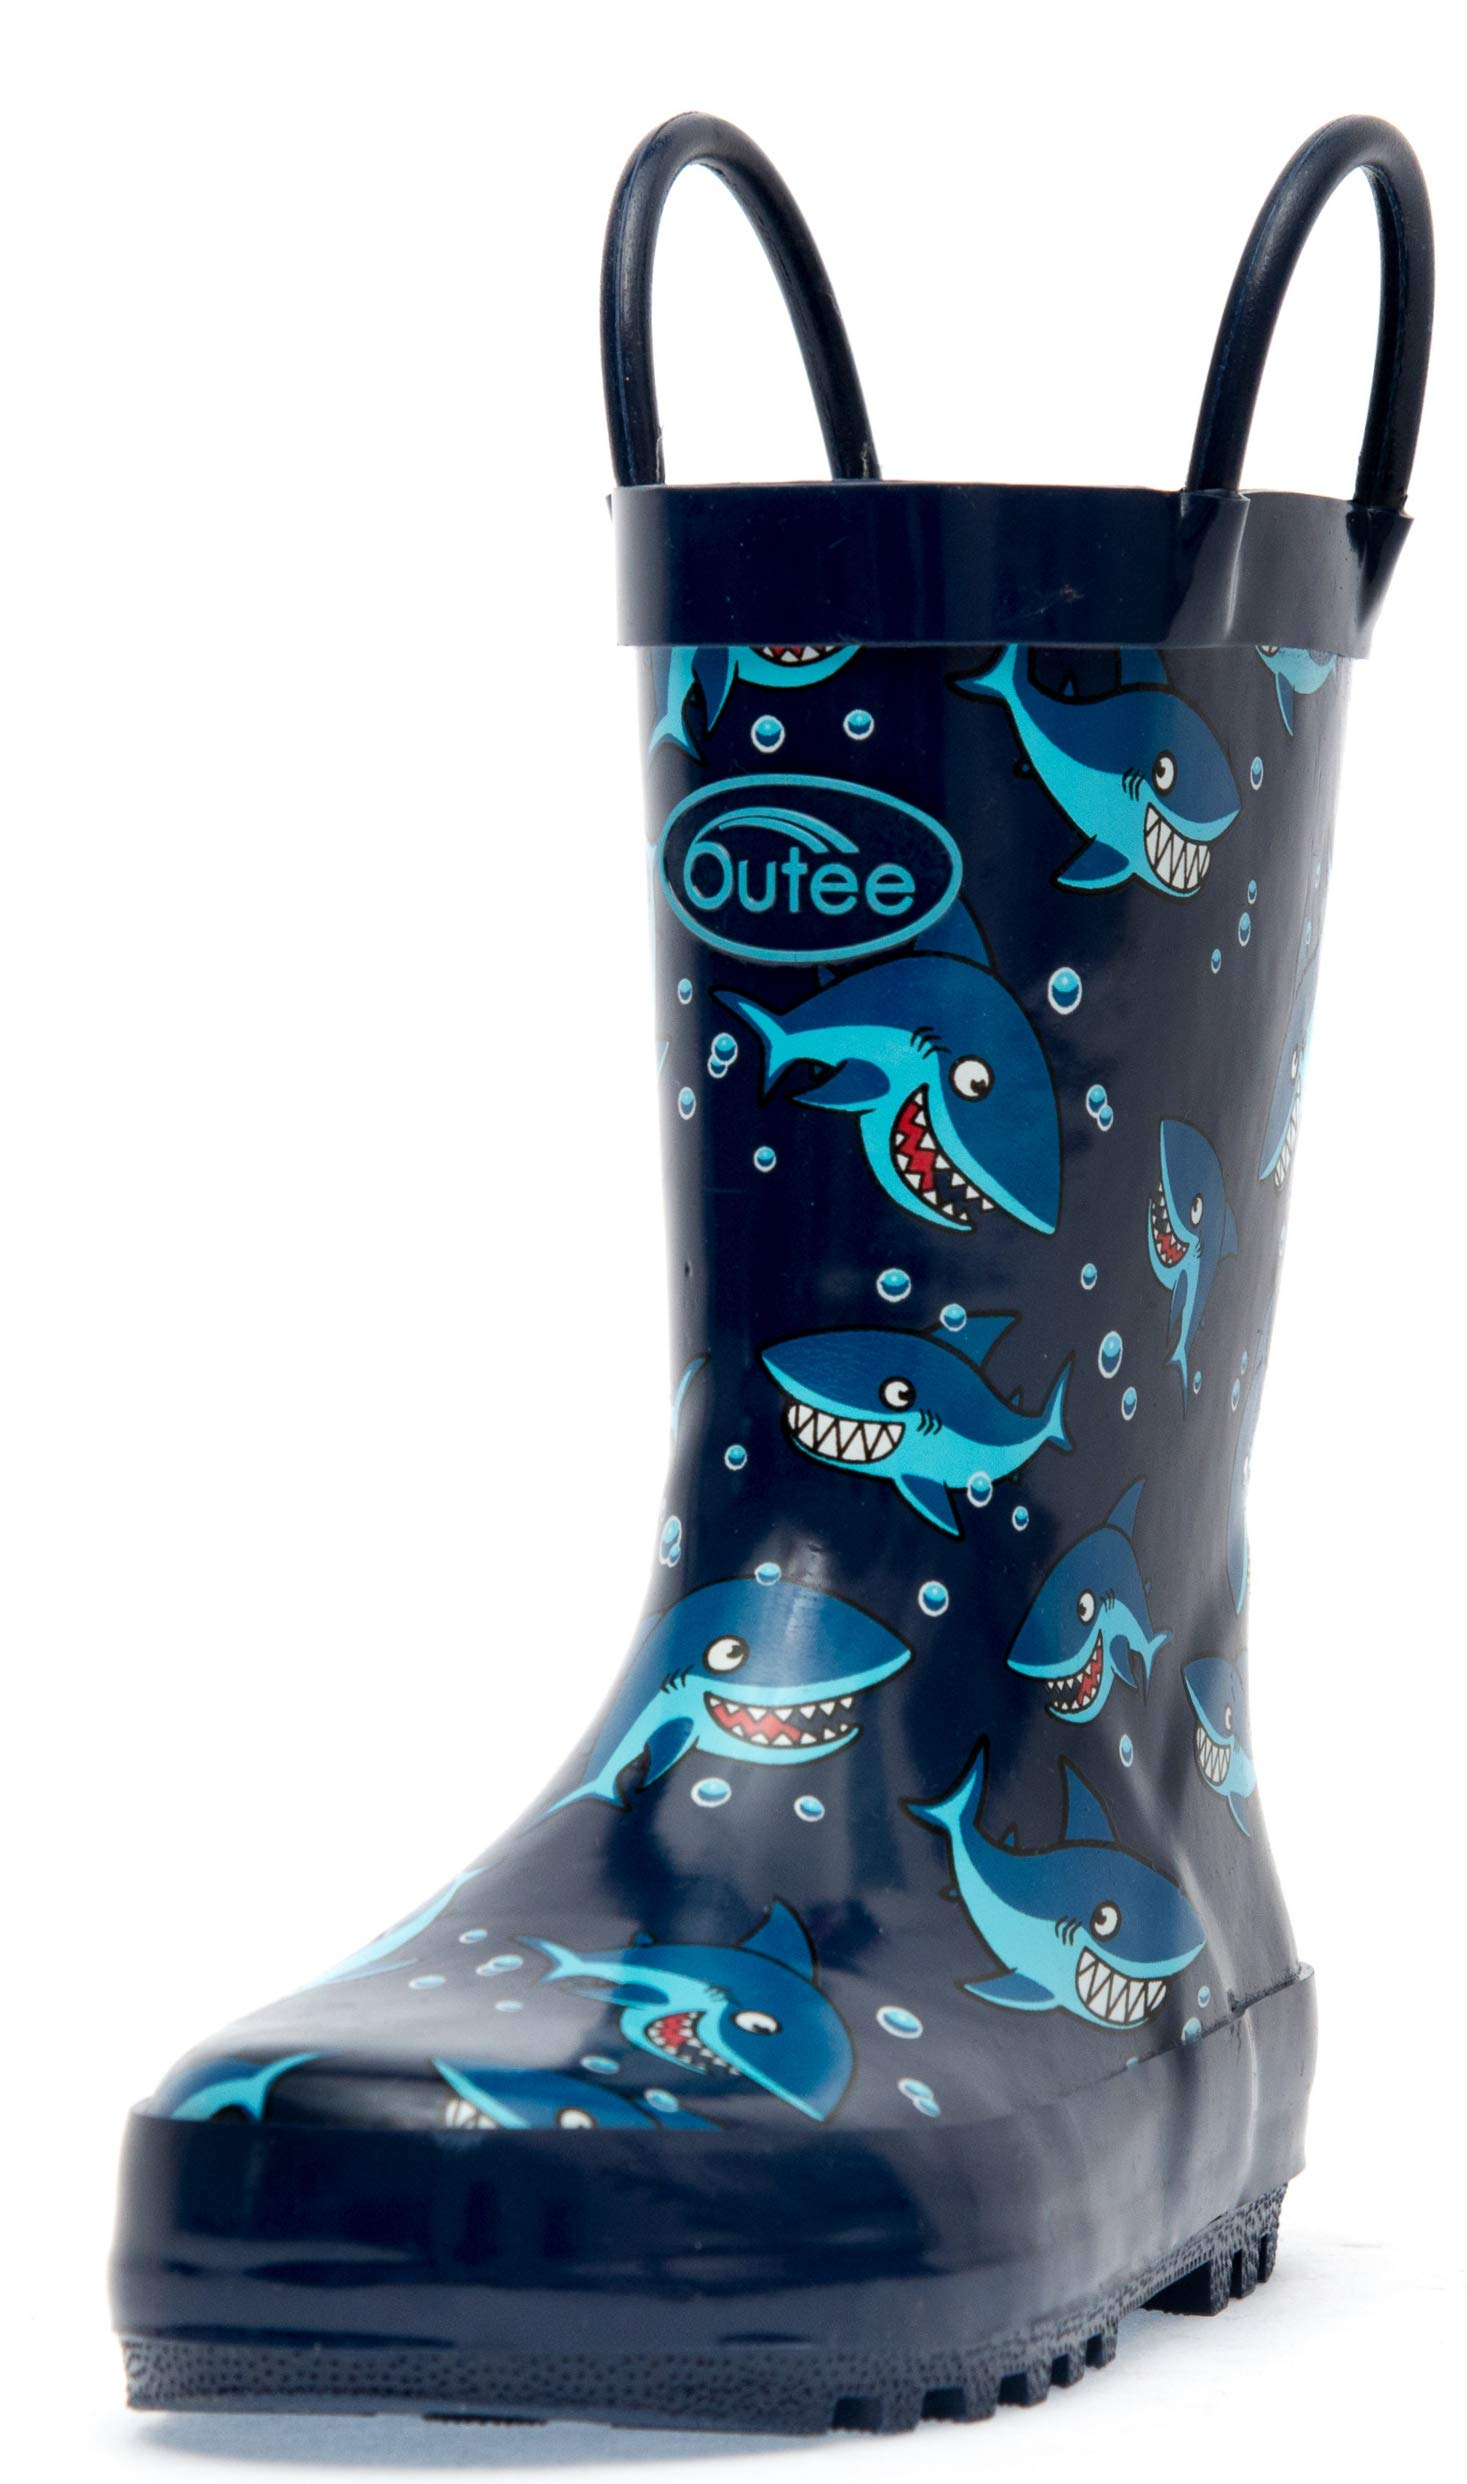 Outee Toddler Rain Boots Boys Kids Rubber Waterproof Shoes Printed Blue Shark Cute Print with Easy On Handles (Size 9,Blue)